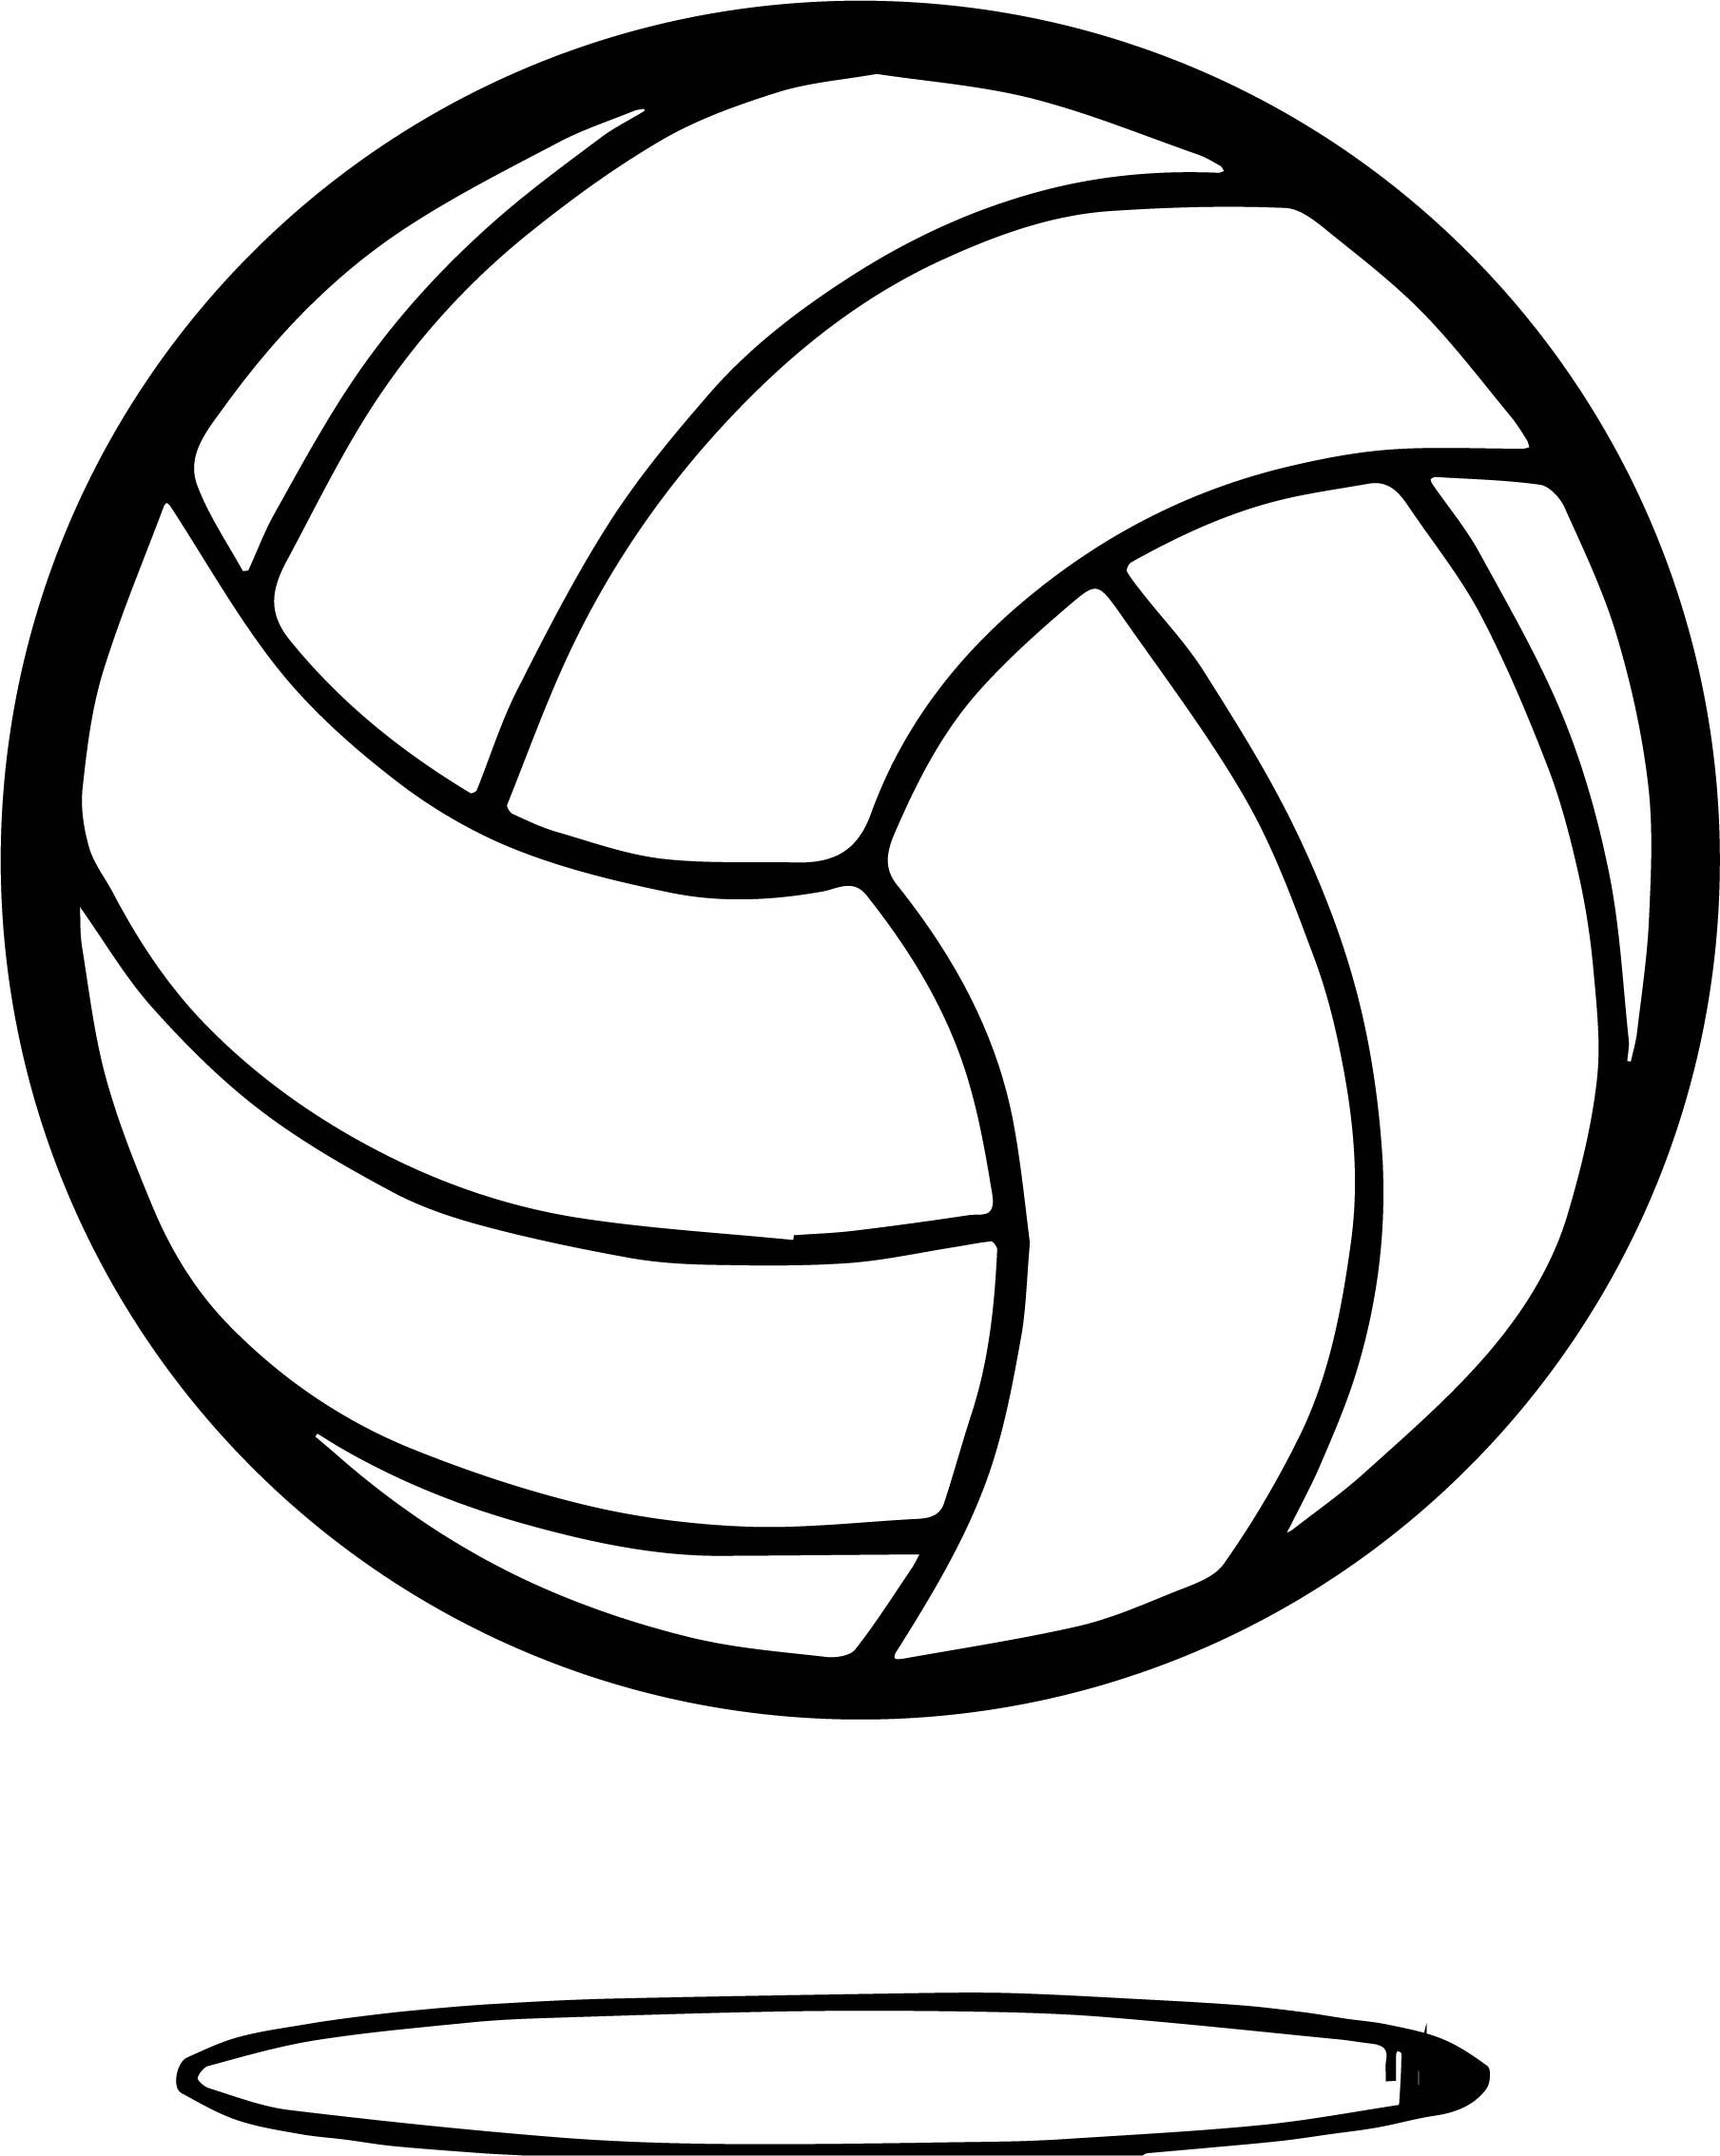 Nice Volleyball Ball Up Coloring Page Coloring Pages Volleyball Coloring Pages For Boys